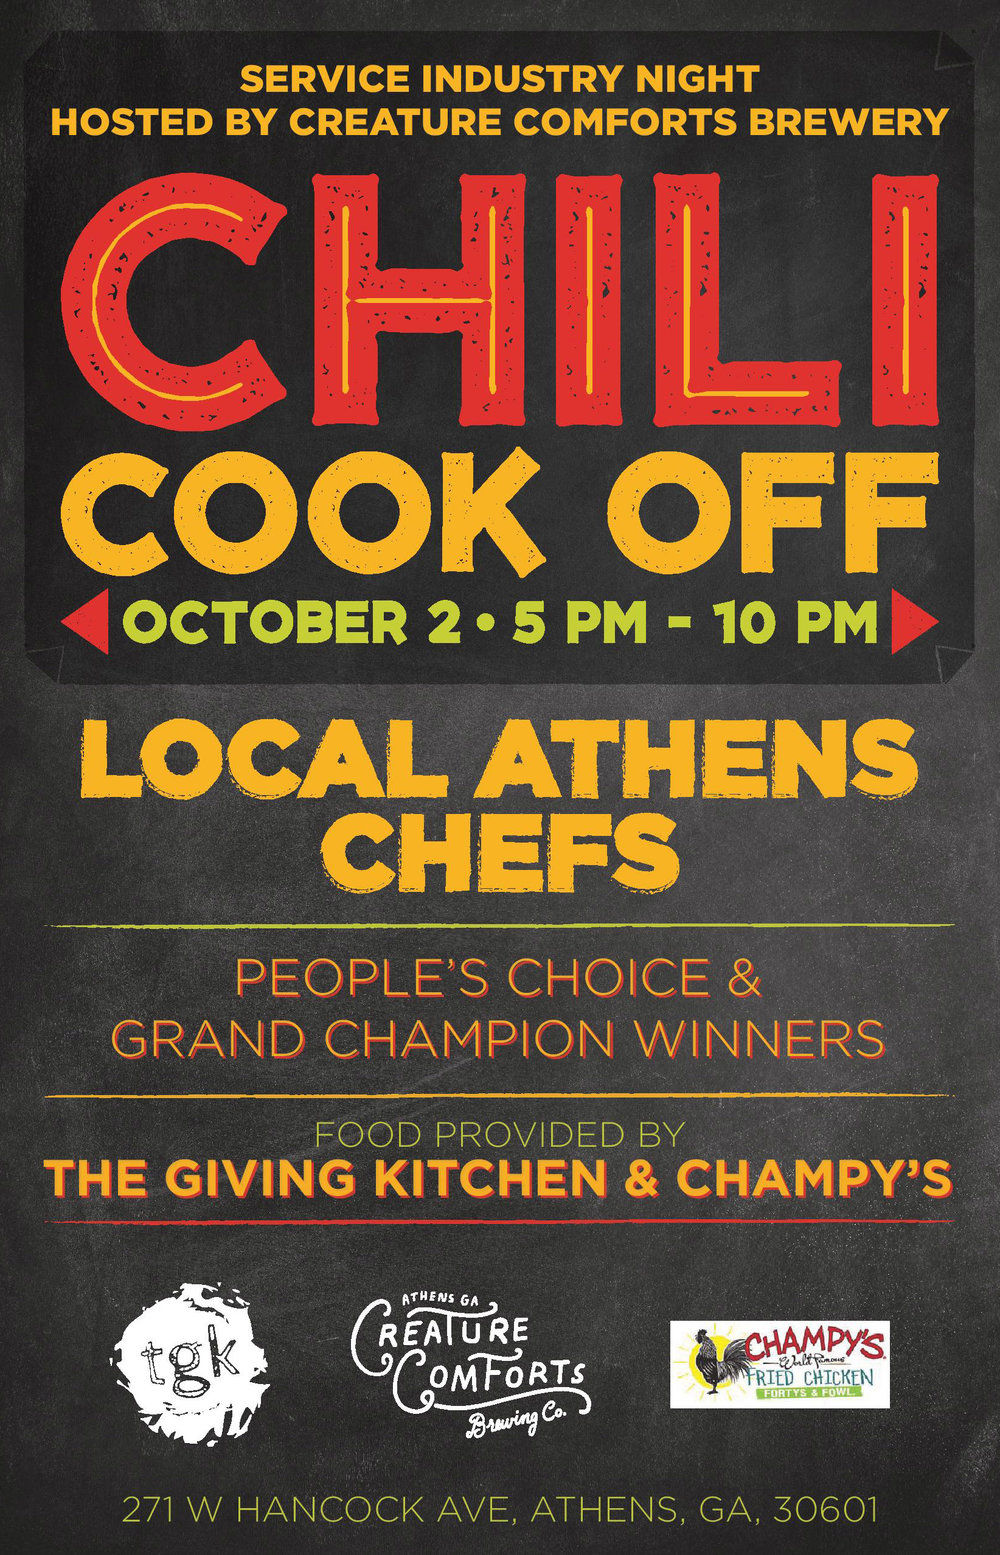 CCBC_11x17_Chili_Cook_Off_Poster-v3-page-001.jpg